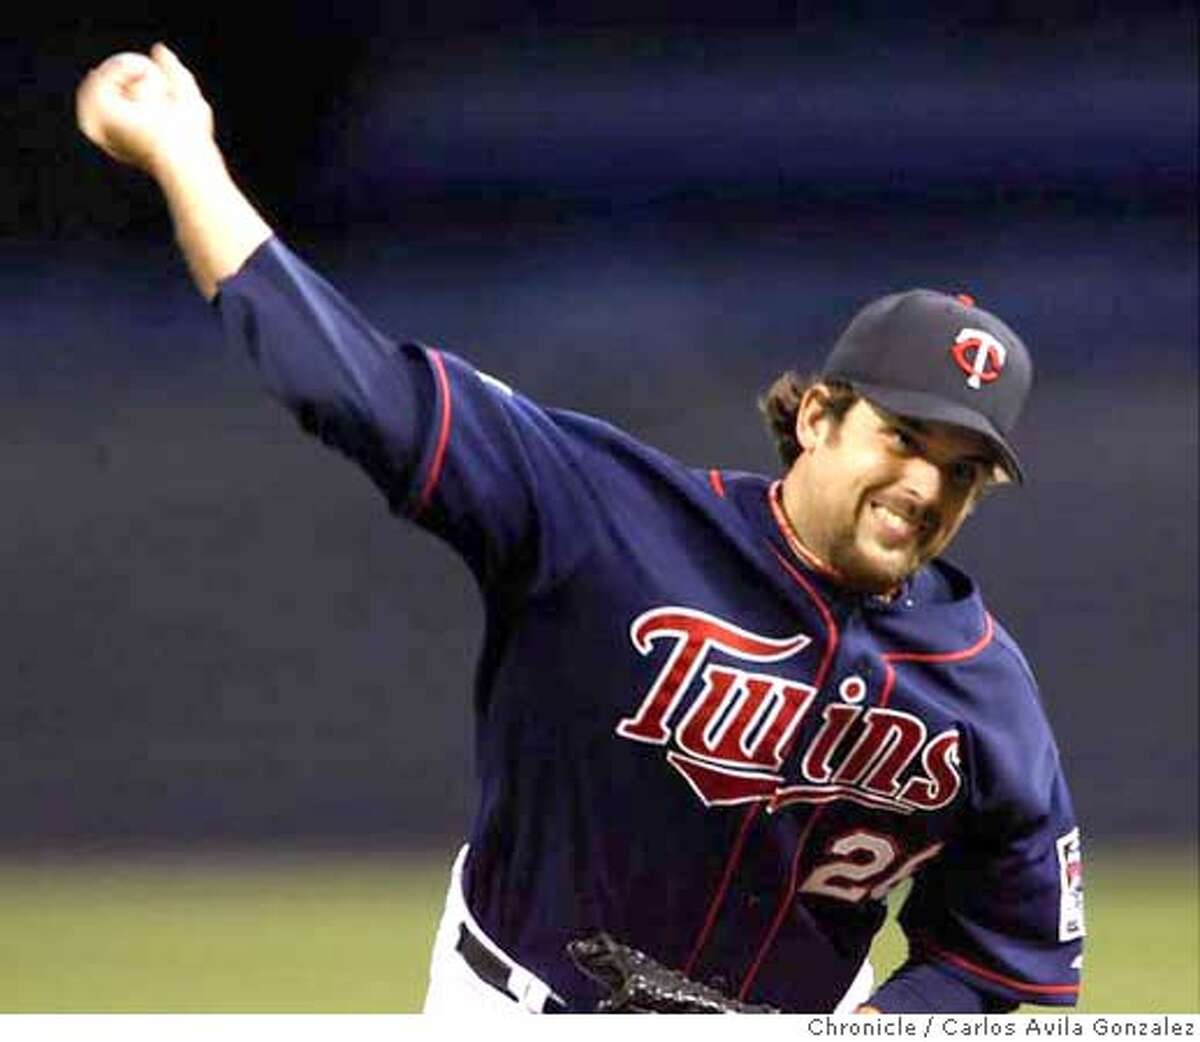 Boof Bonser started the game for the Twins. The Oakland Athletics played the Minnesota Twins in Game 2 of the American League Division Series at the Metrodome in Minneapolis, Mn., on Wednesday October 4, 2006, winning the game, 5-2. Photo by Carlos Avila Gonzalez/The San Francisco Chronicle Photo taken on 10/4/06, in Minneapolis, Mn, USA **All names cq (source)